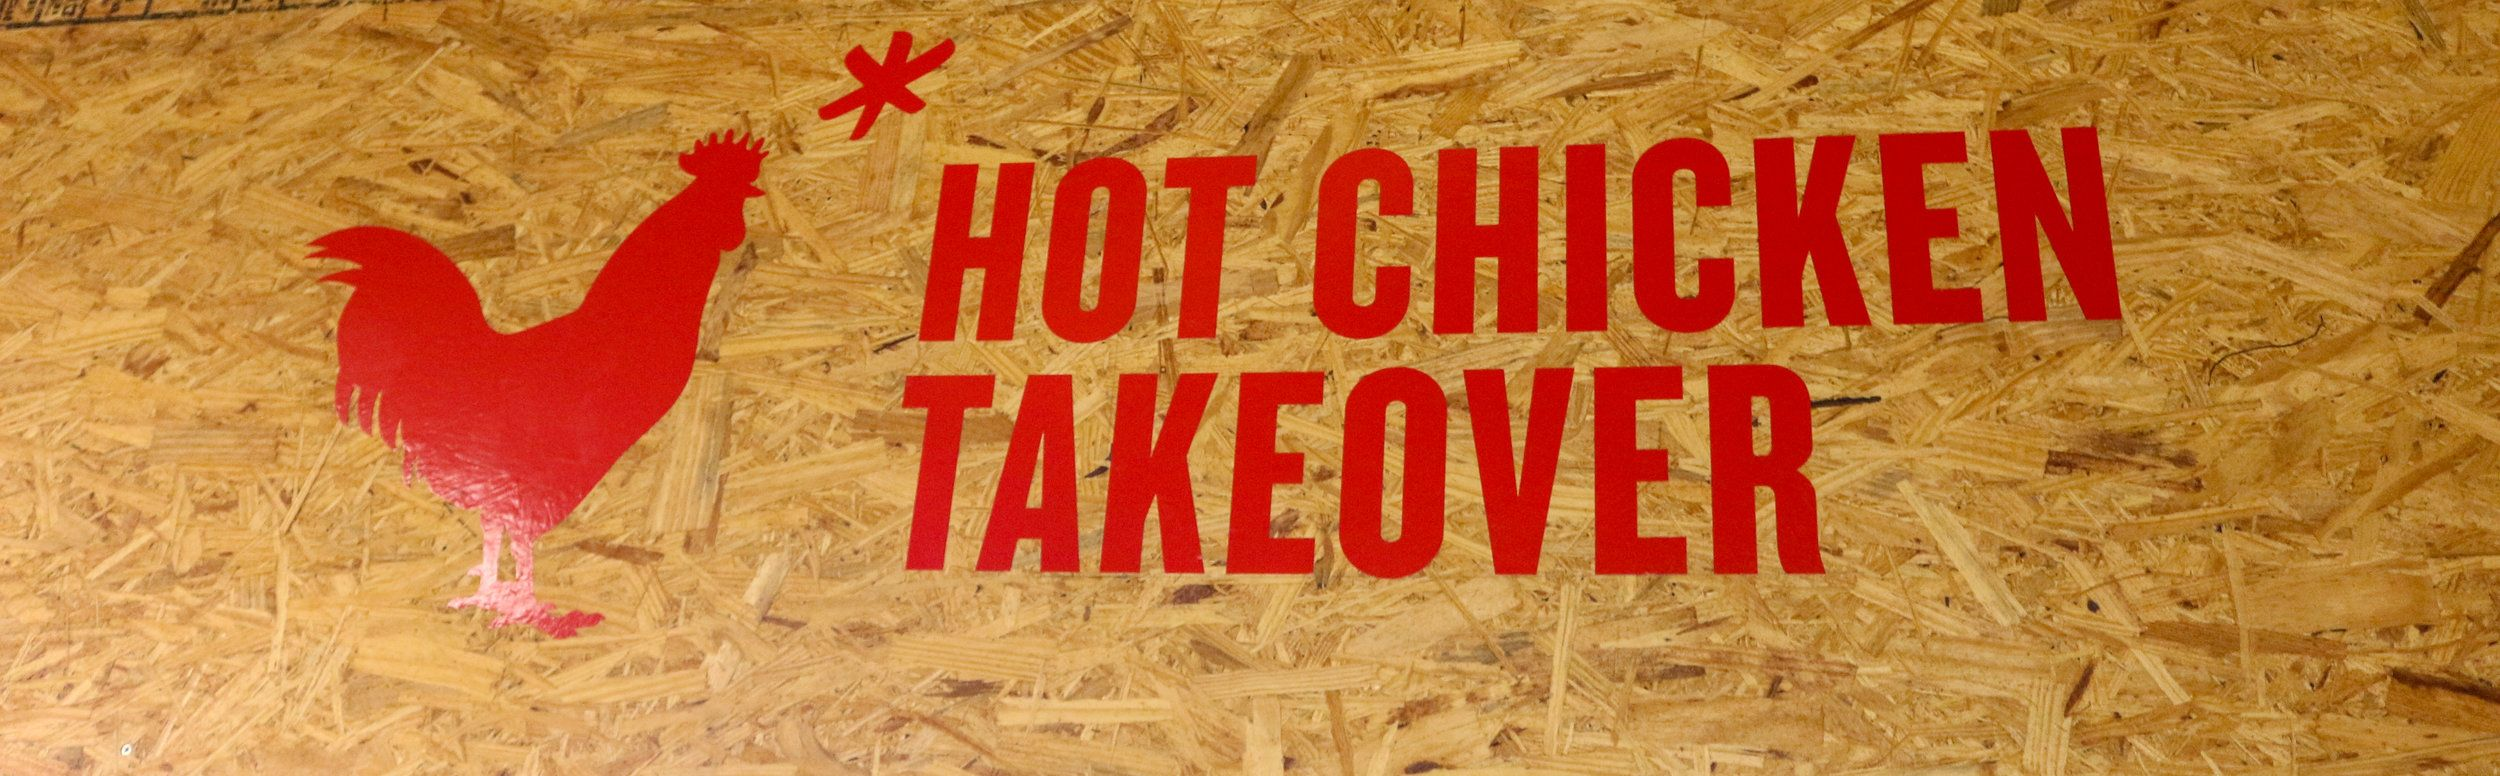 Second Chances and a Hot Chicken Takeover Hot chicken